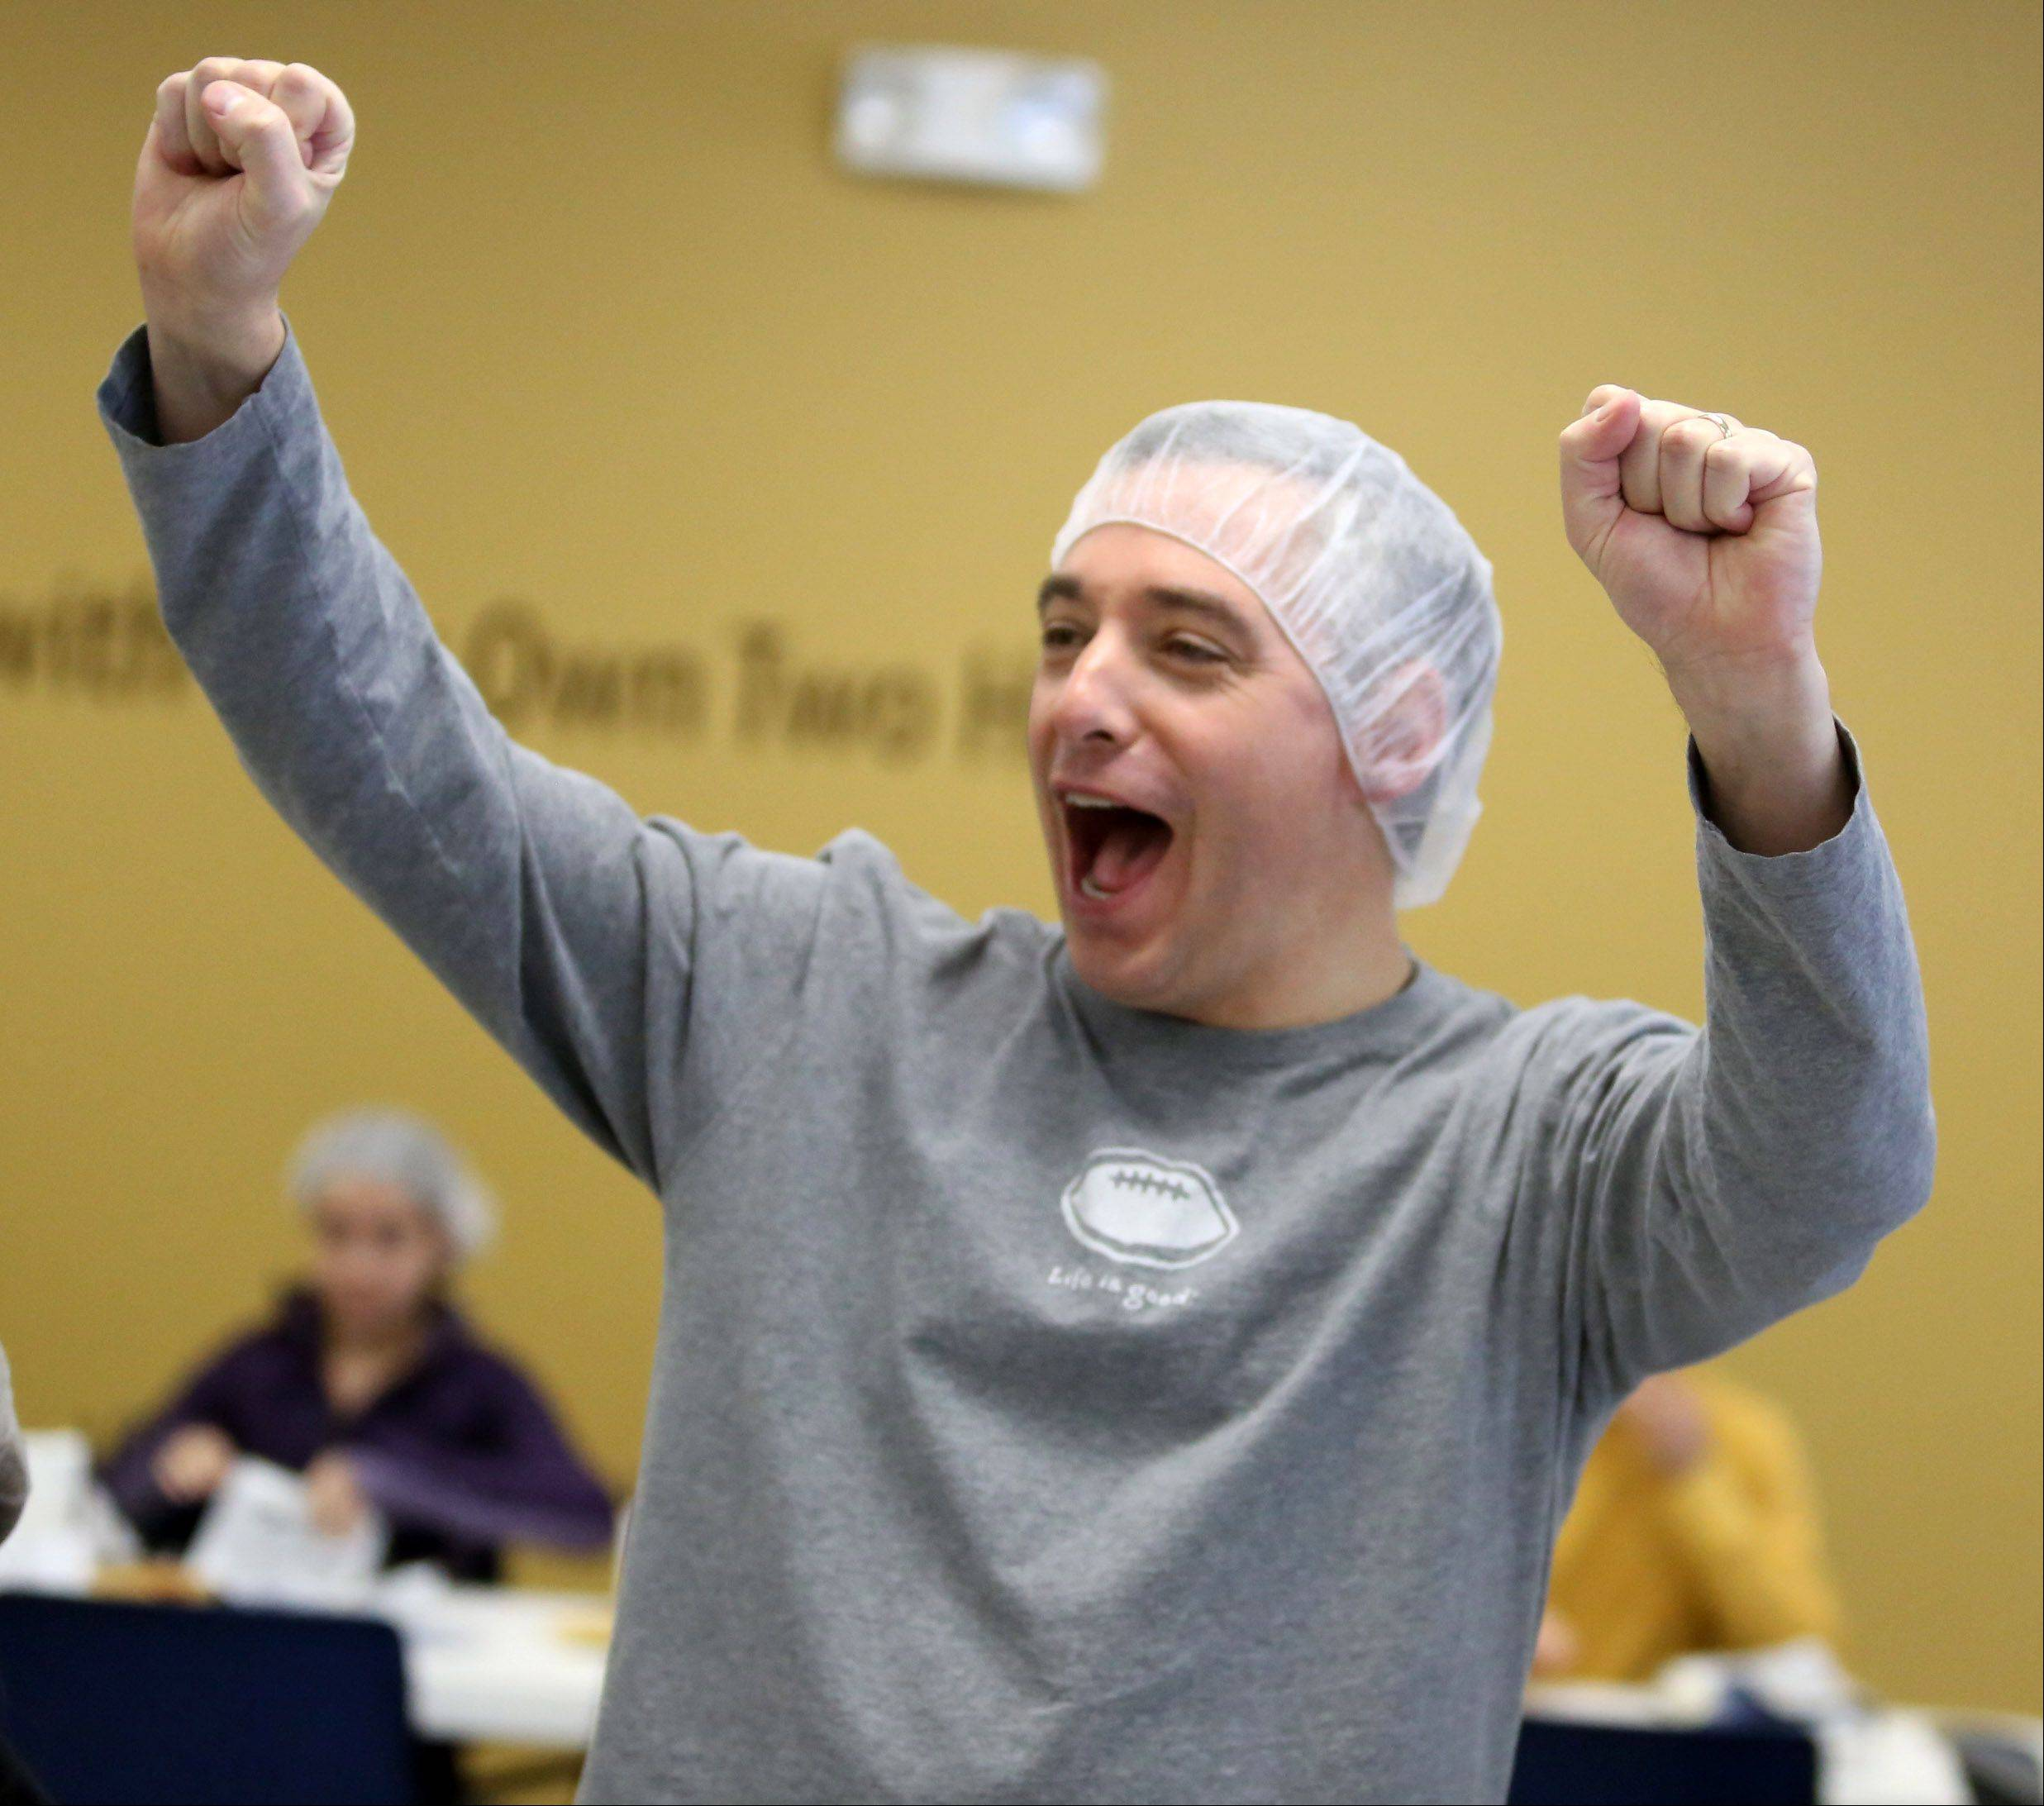 Javier Rodriguez, of Lake Forest, lets out a cheer for his family group as they pack food Tuesday in Libertyville.